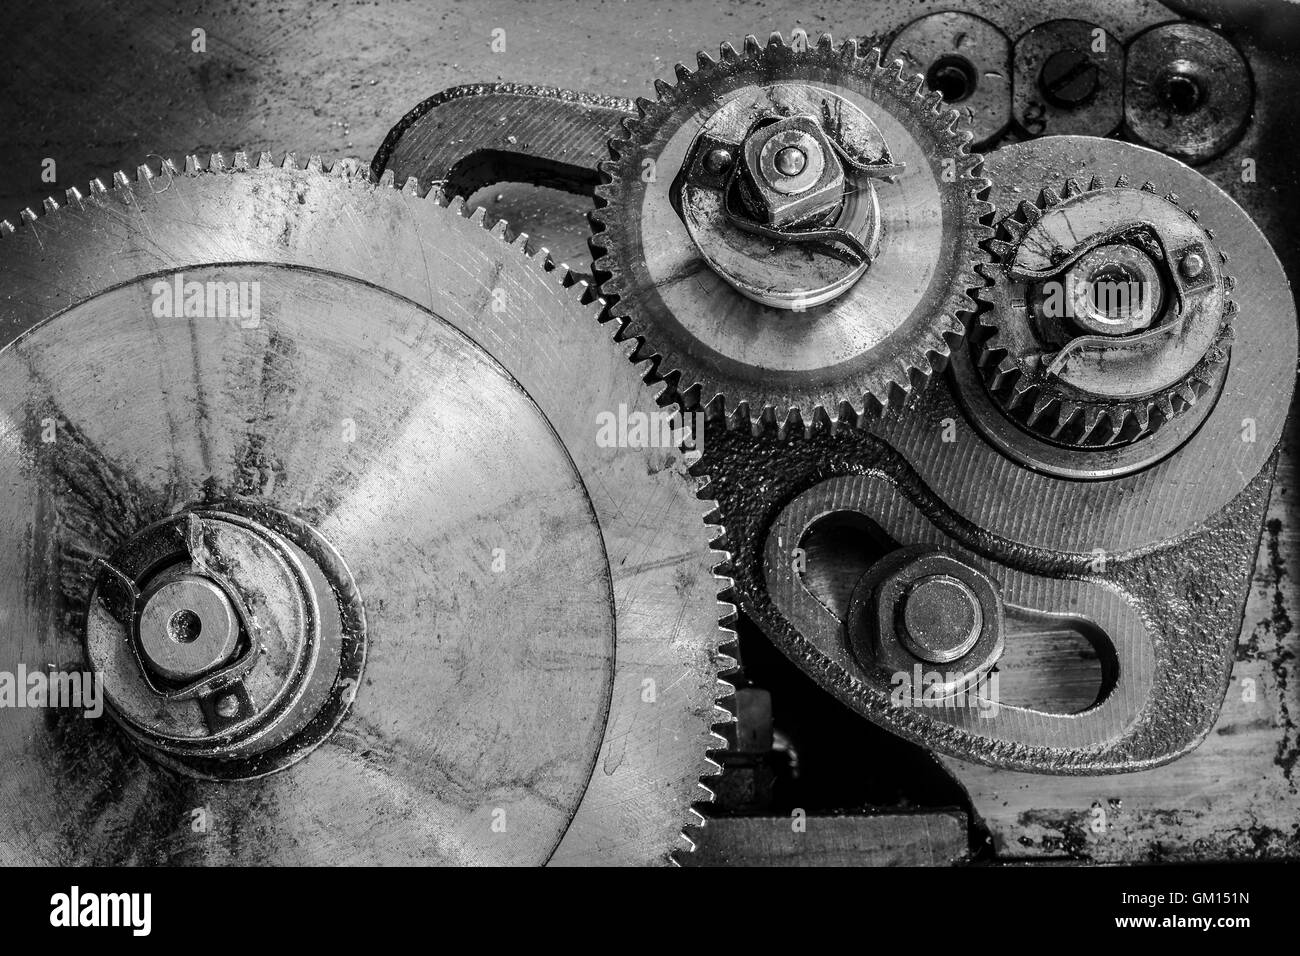 gearing on a old lathe - Stock Image